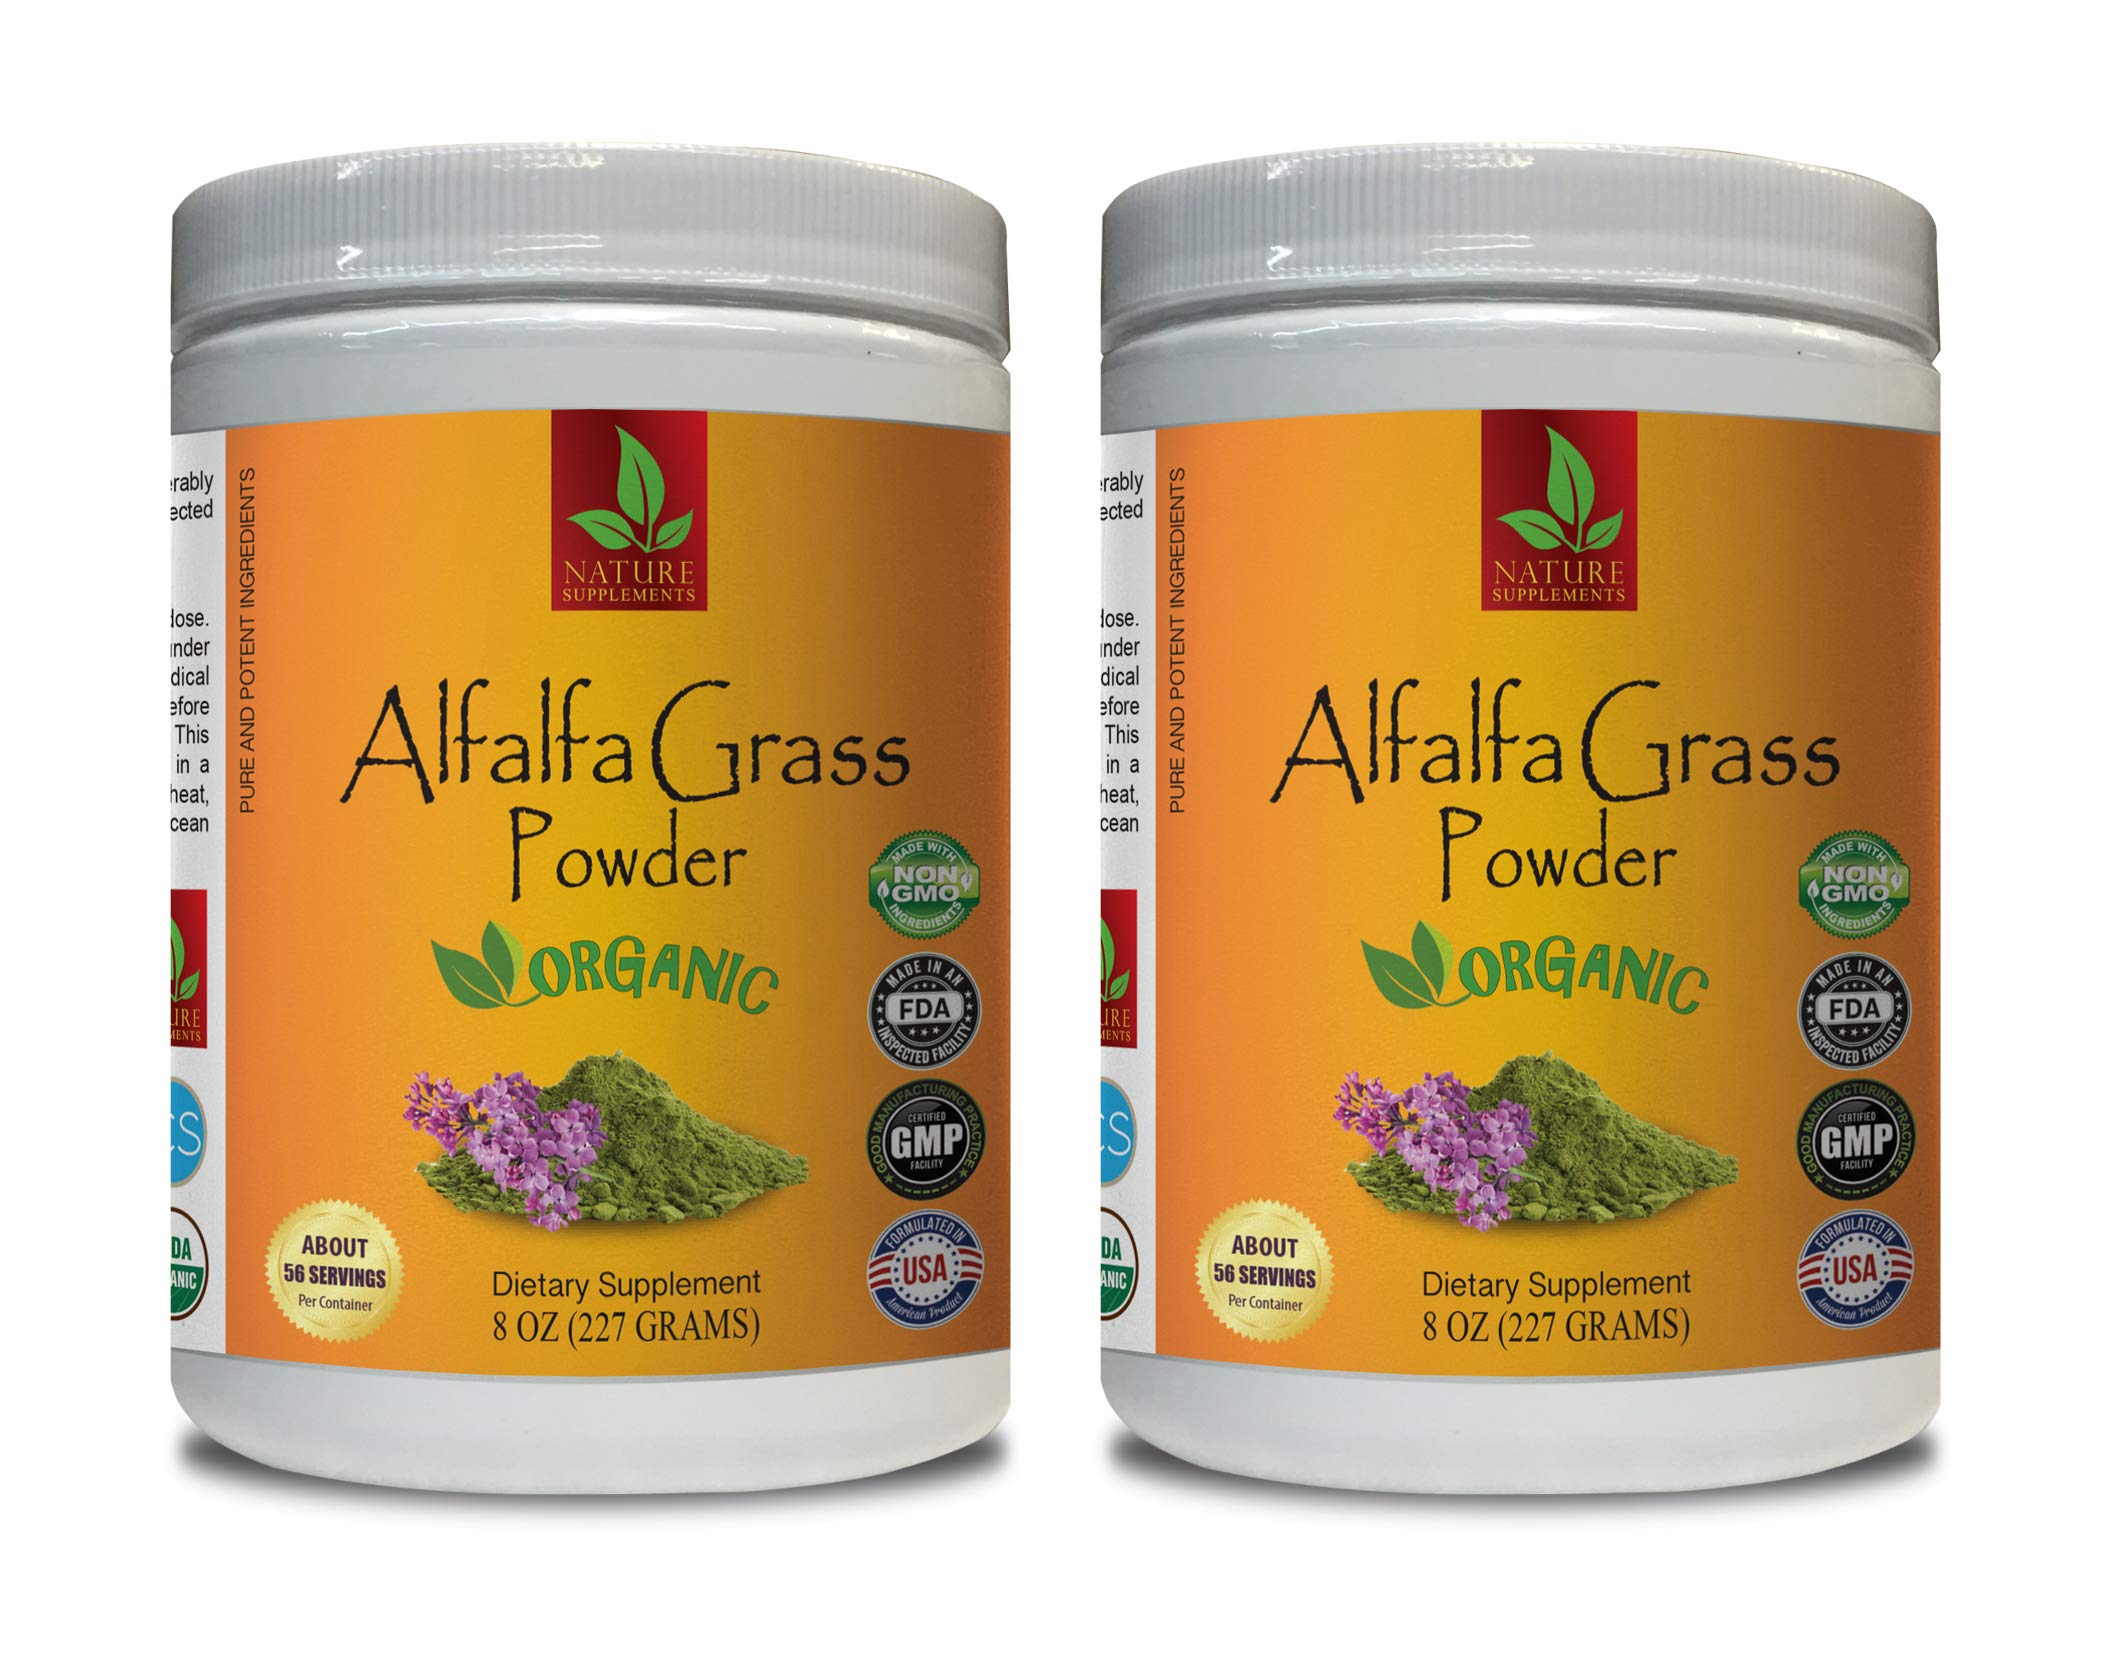 Immune System Booster Pills - Alfalfa Organic Grass Powder - Pure and Potent Ingredients - Alfalfa Leaf Organic - 2 Cans 16 OZ (112 Servings)